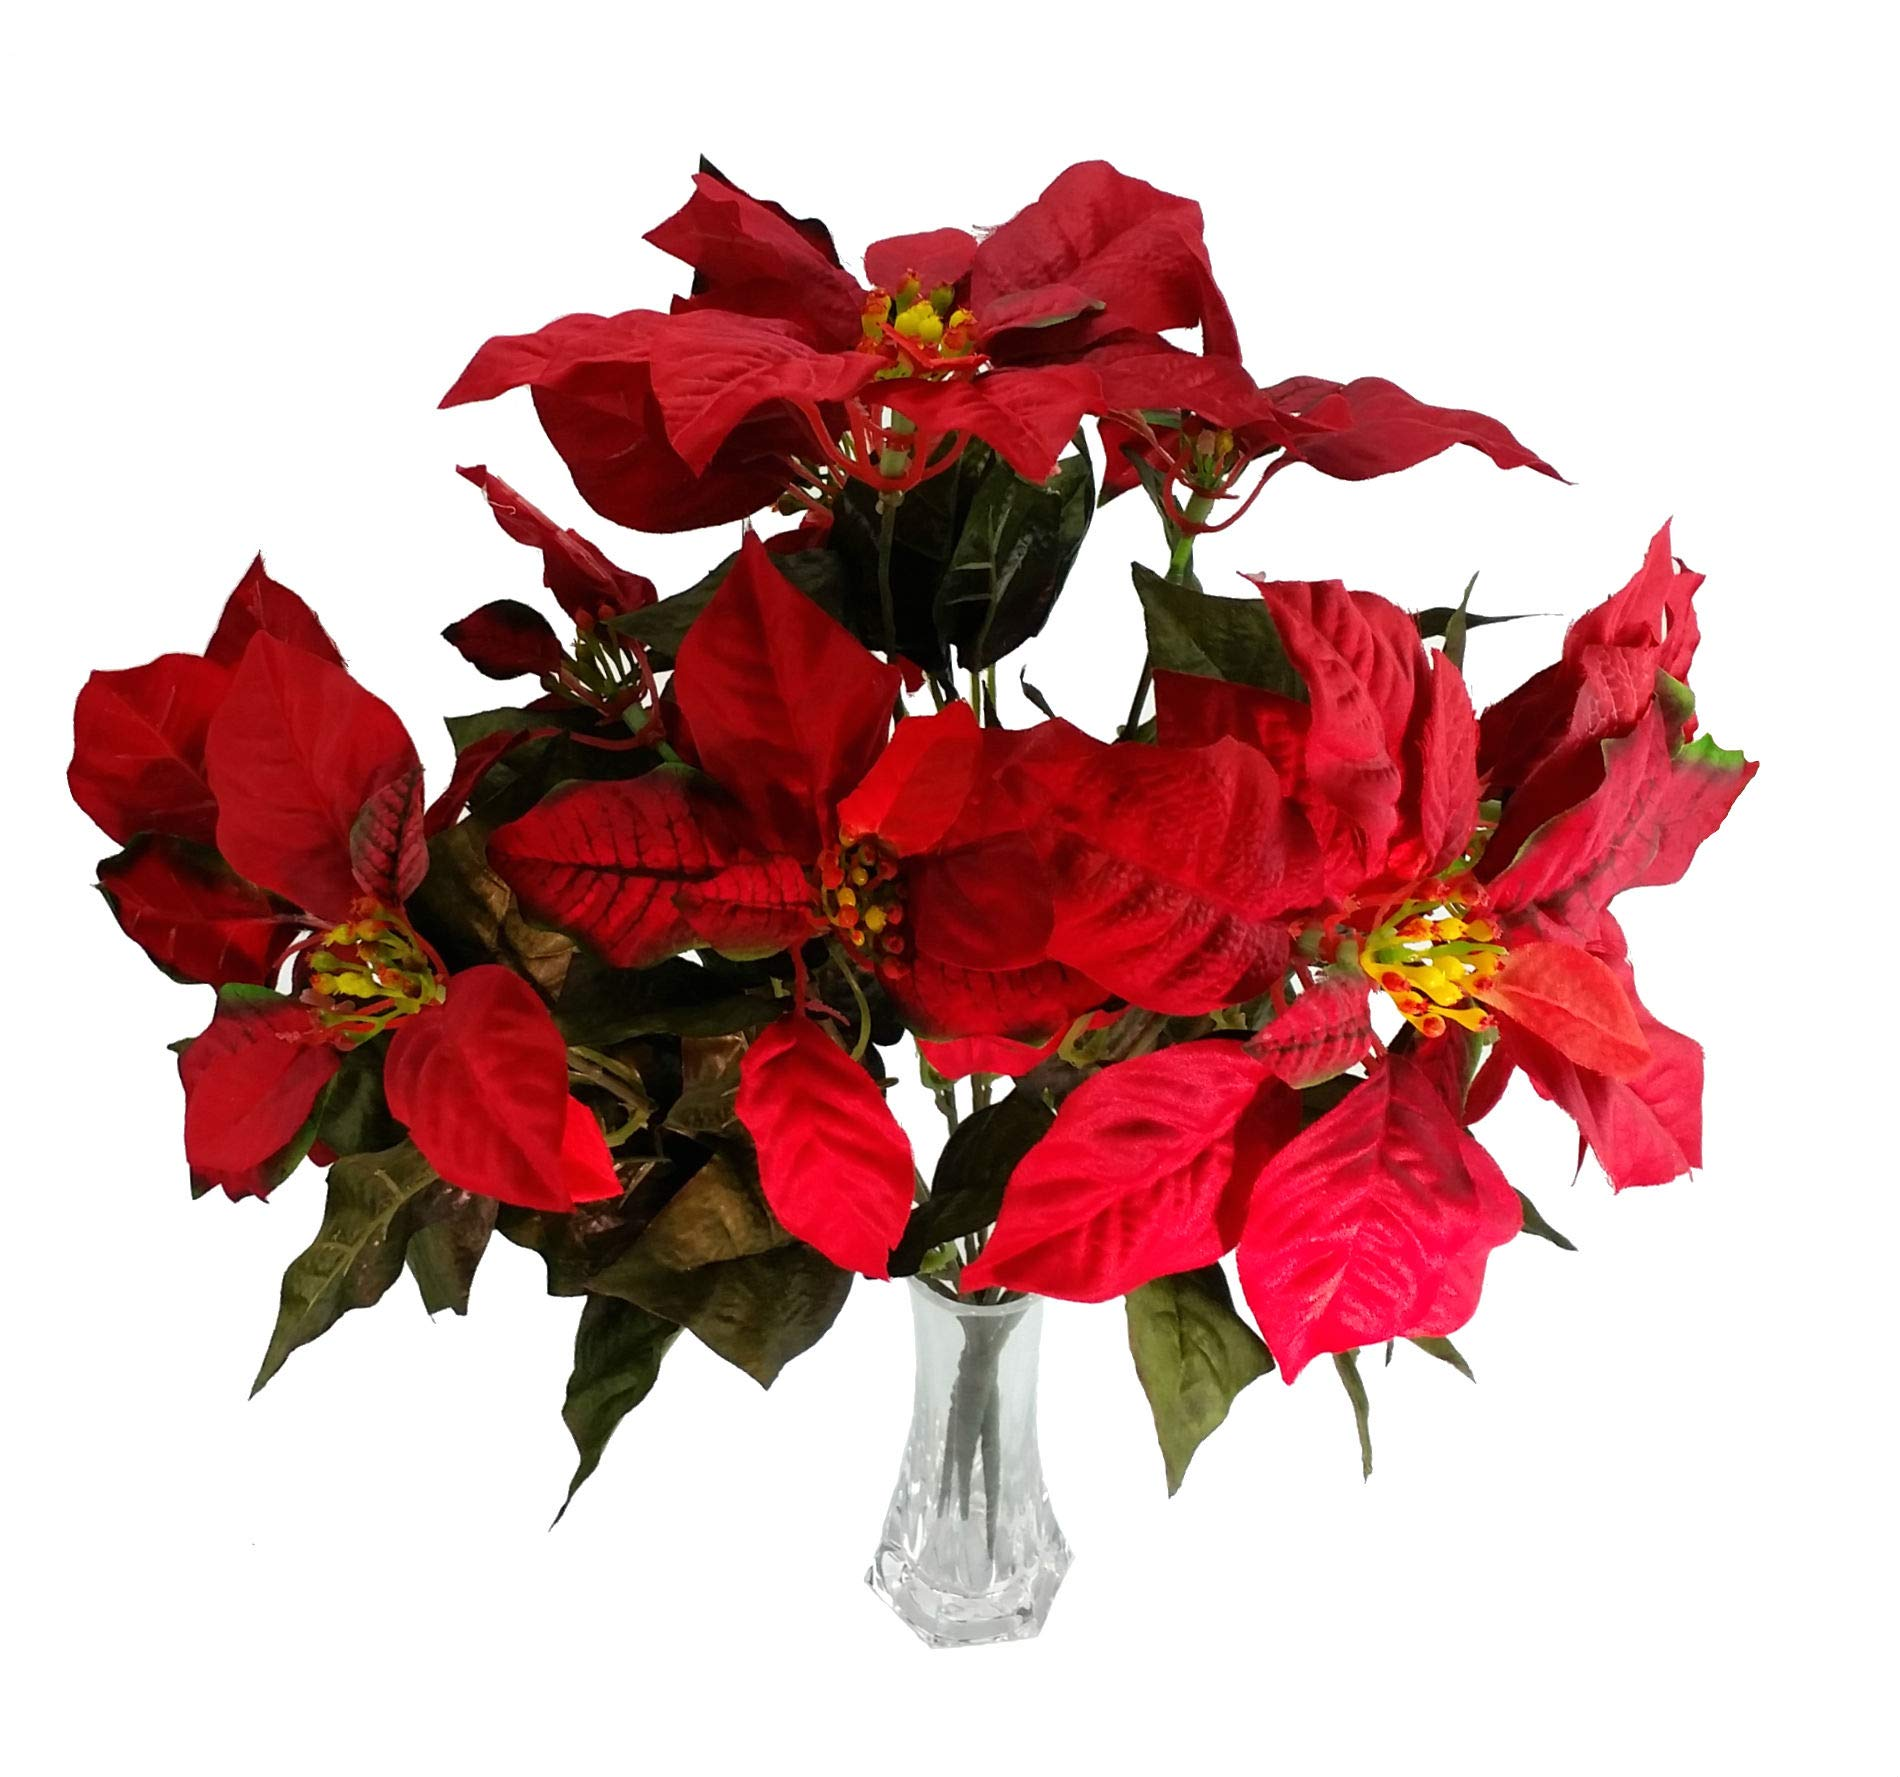 MM-TJ-Products-Artificial-Red-Poinsettia-Busch-5-Stems-2-Bushes